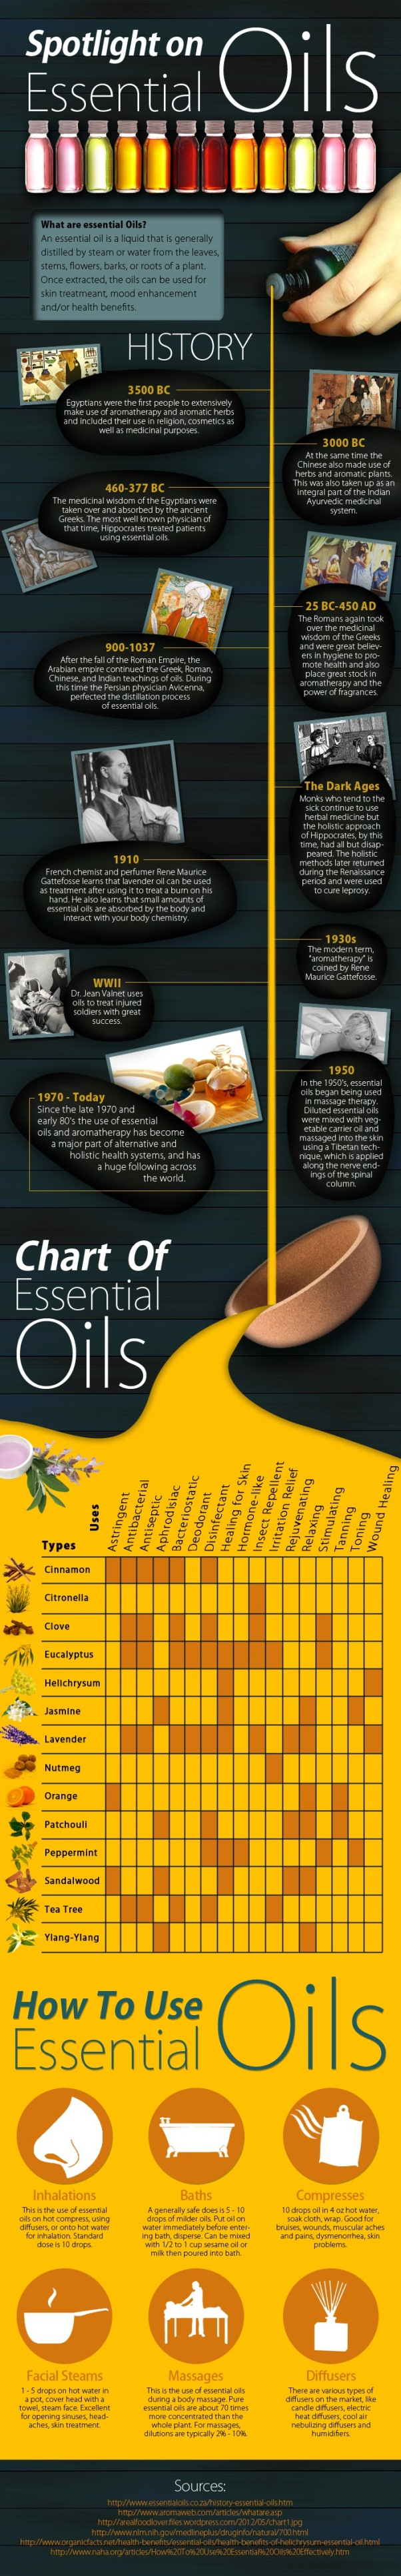 spotlight-on-essential-oils